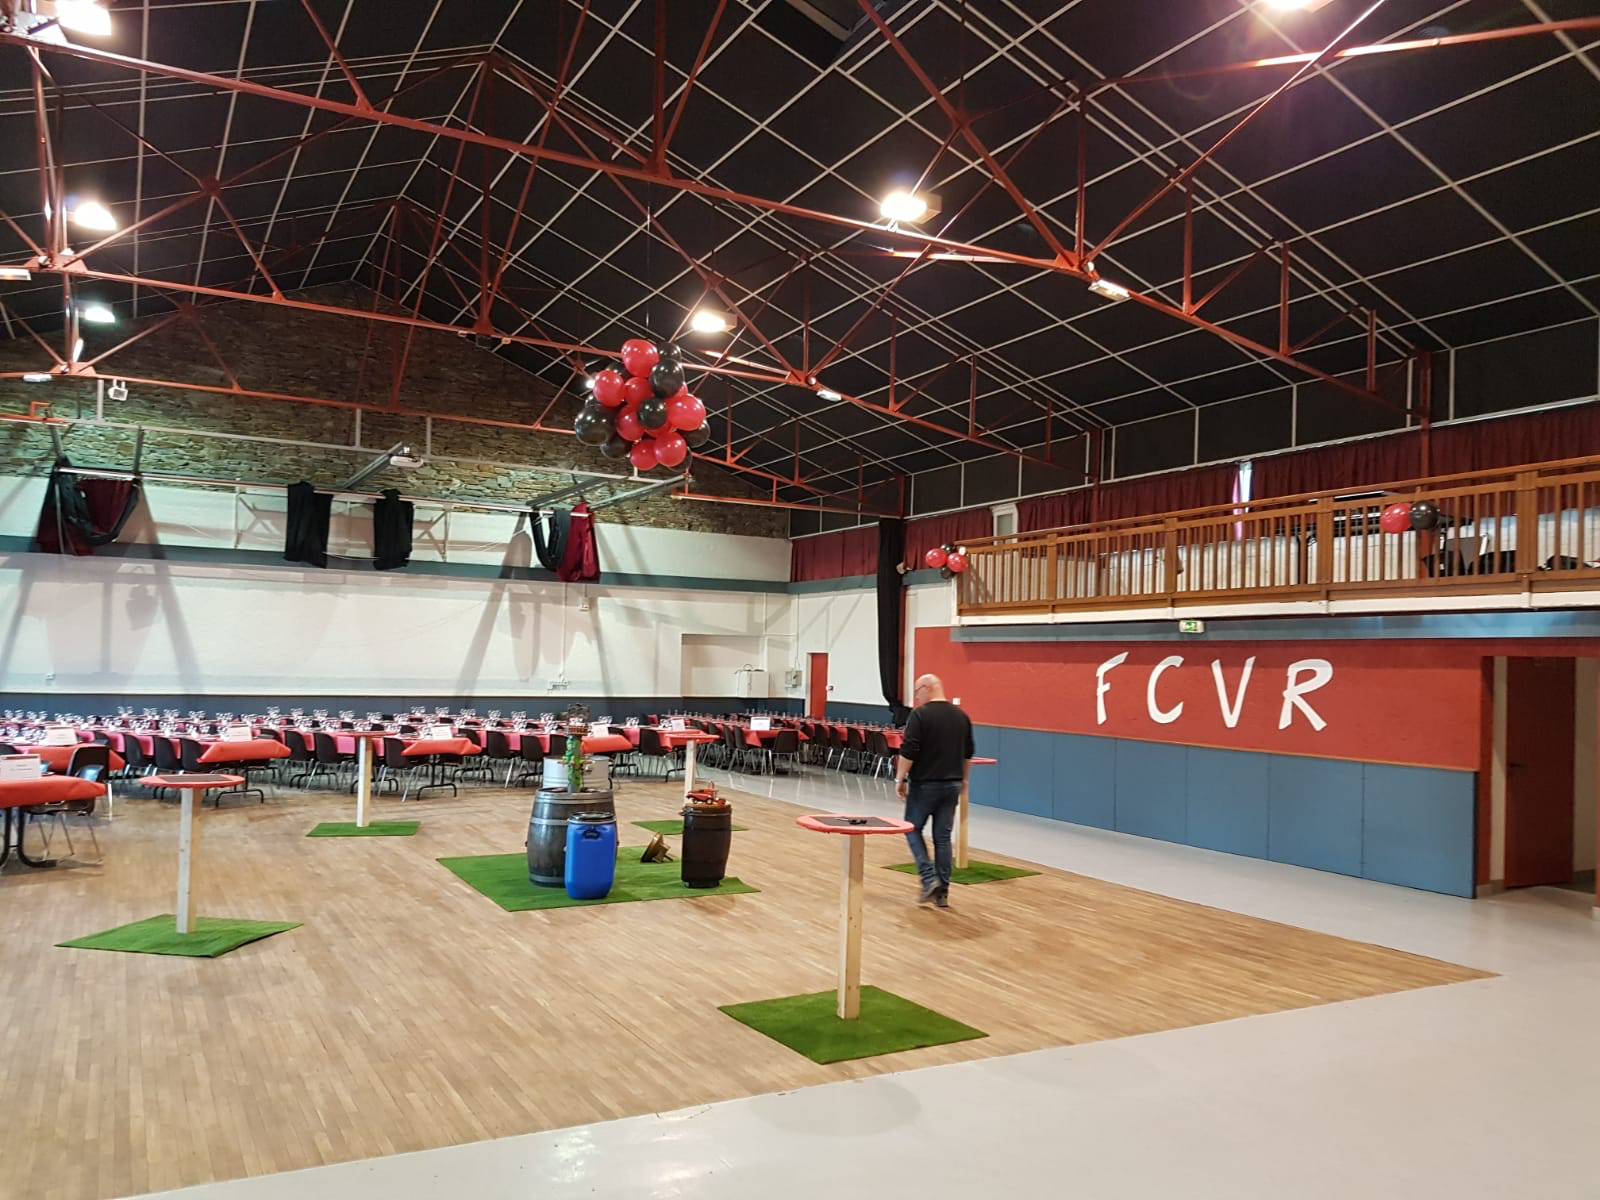 Site du Football Club Villedieu La Renaudière (FCVR)